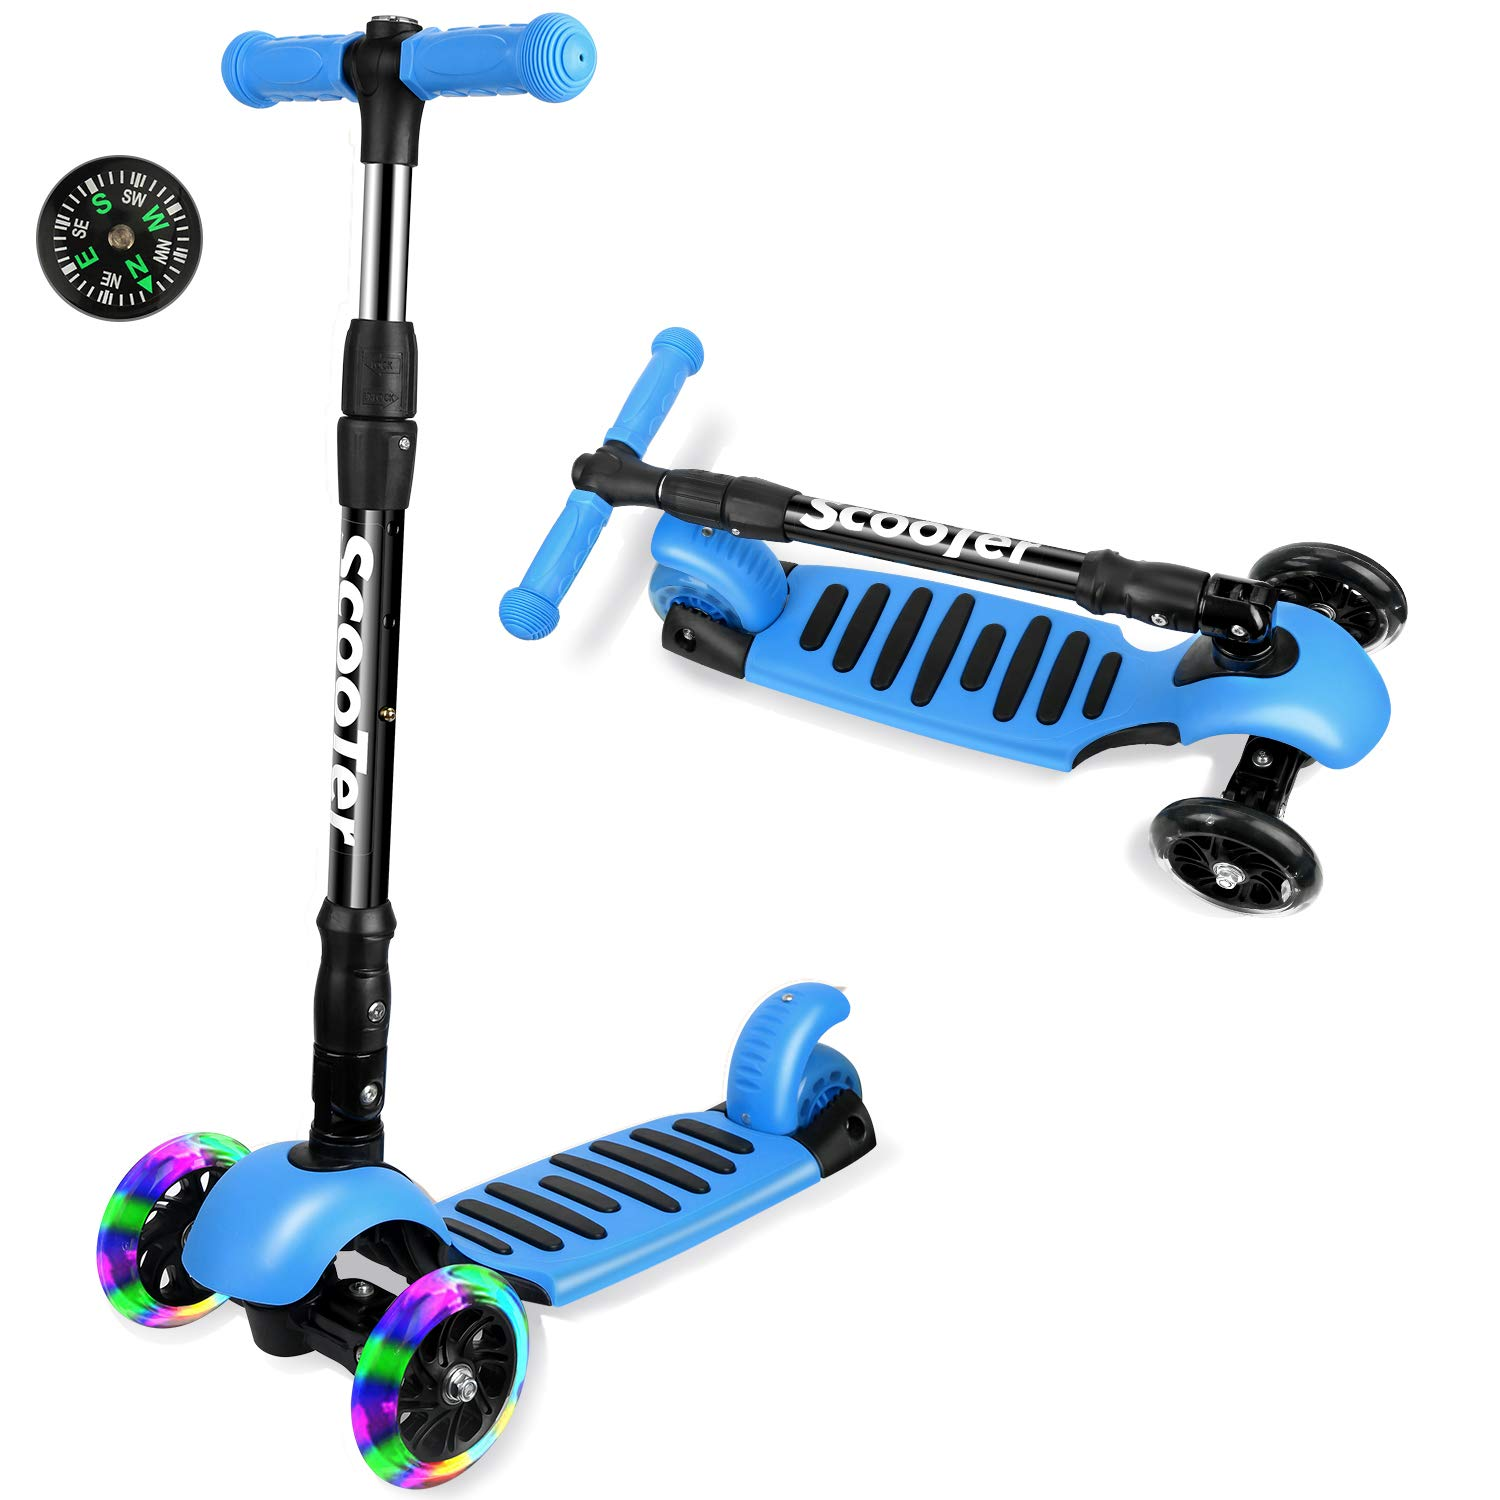 I·CODE Scooter for Kids Premium 3 Wheel Kick Scooter for Toddlers (2-10 Year) with Adjustable Height,Flashing Wheels by I·CODE